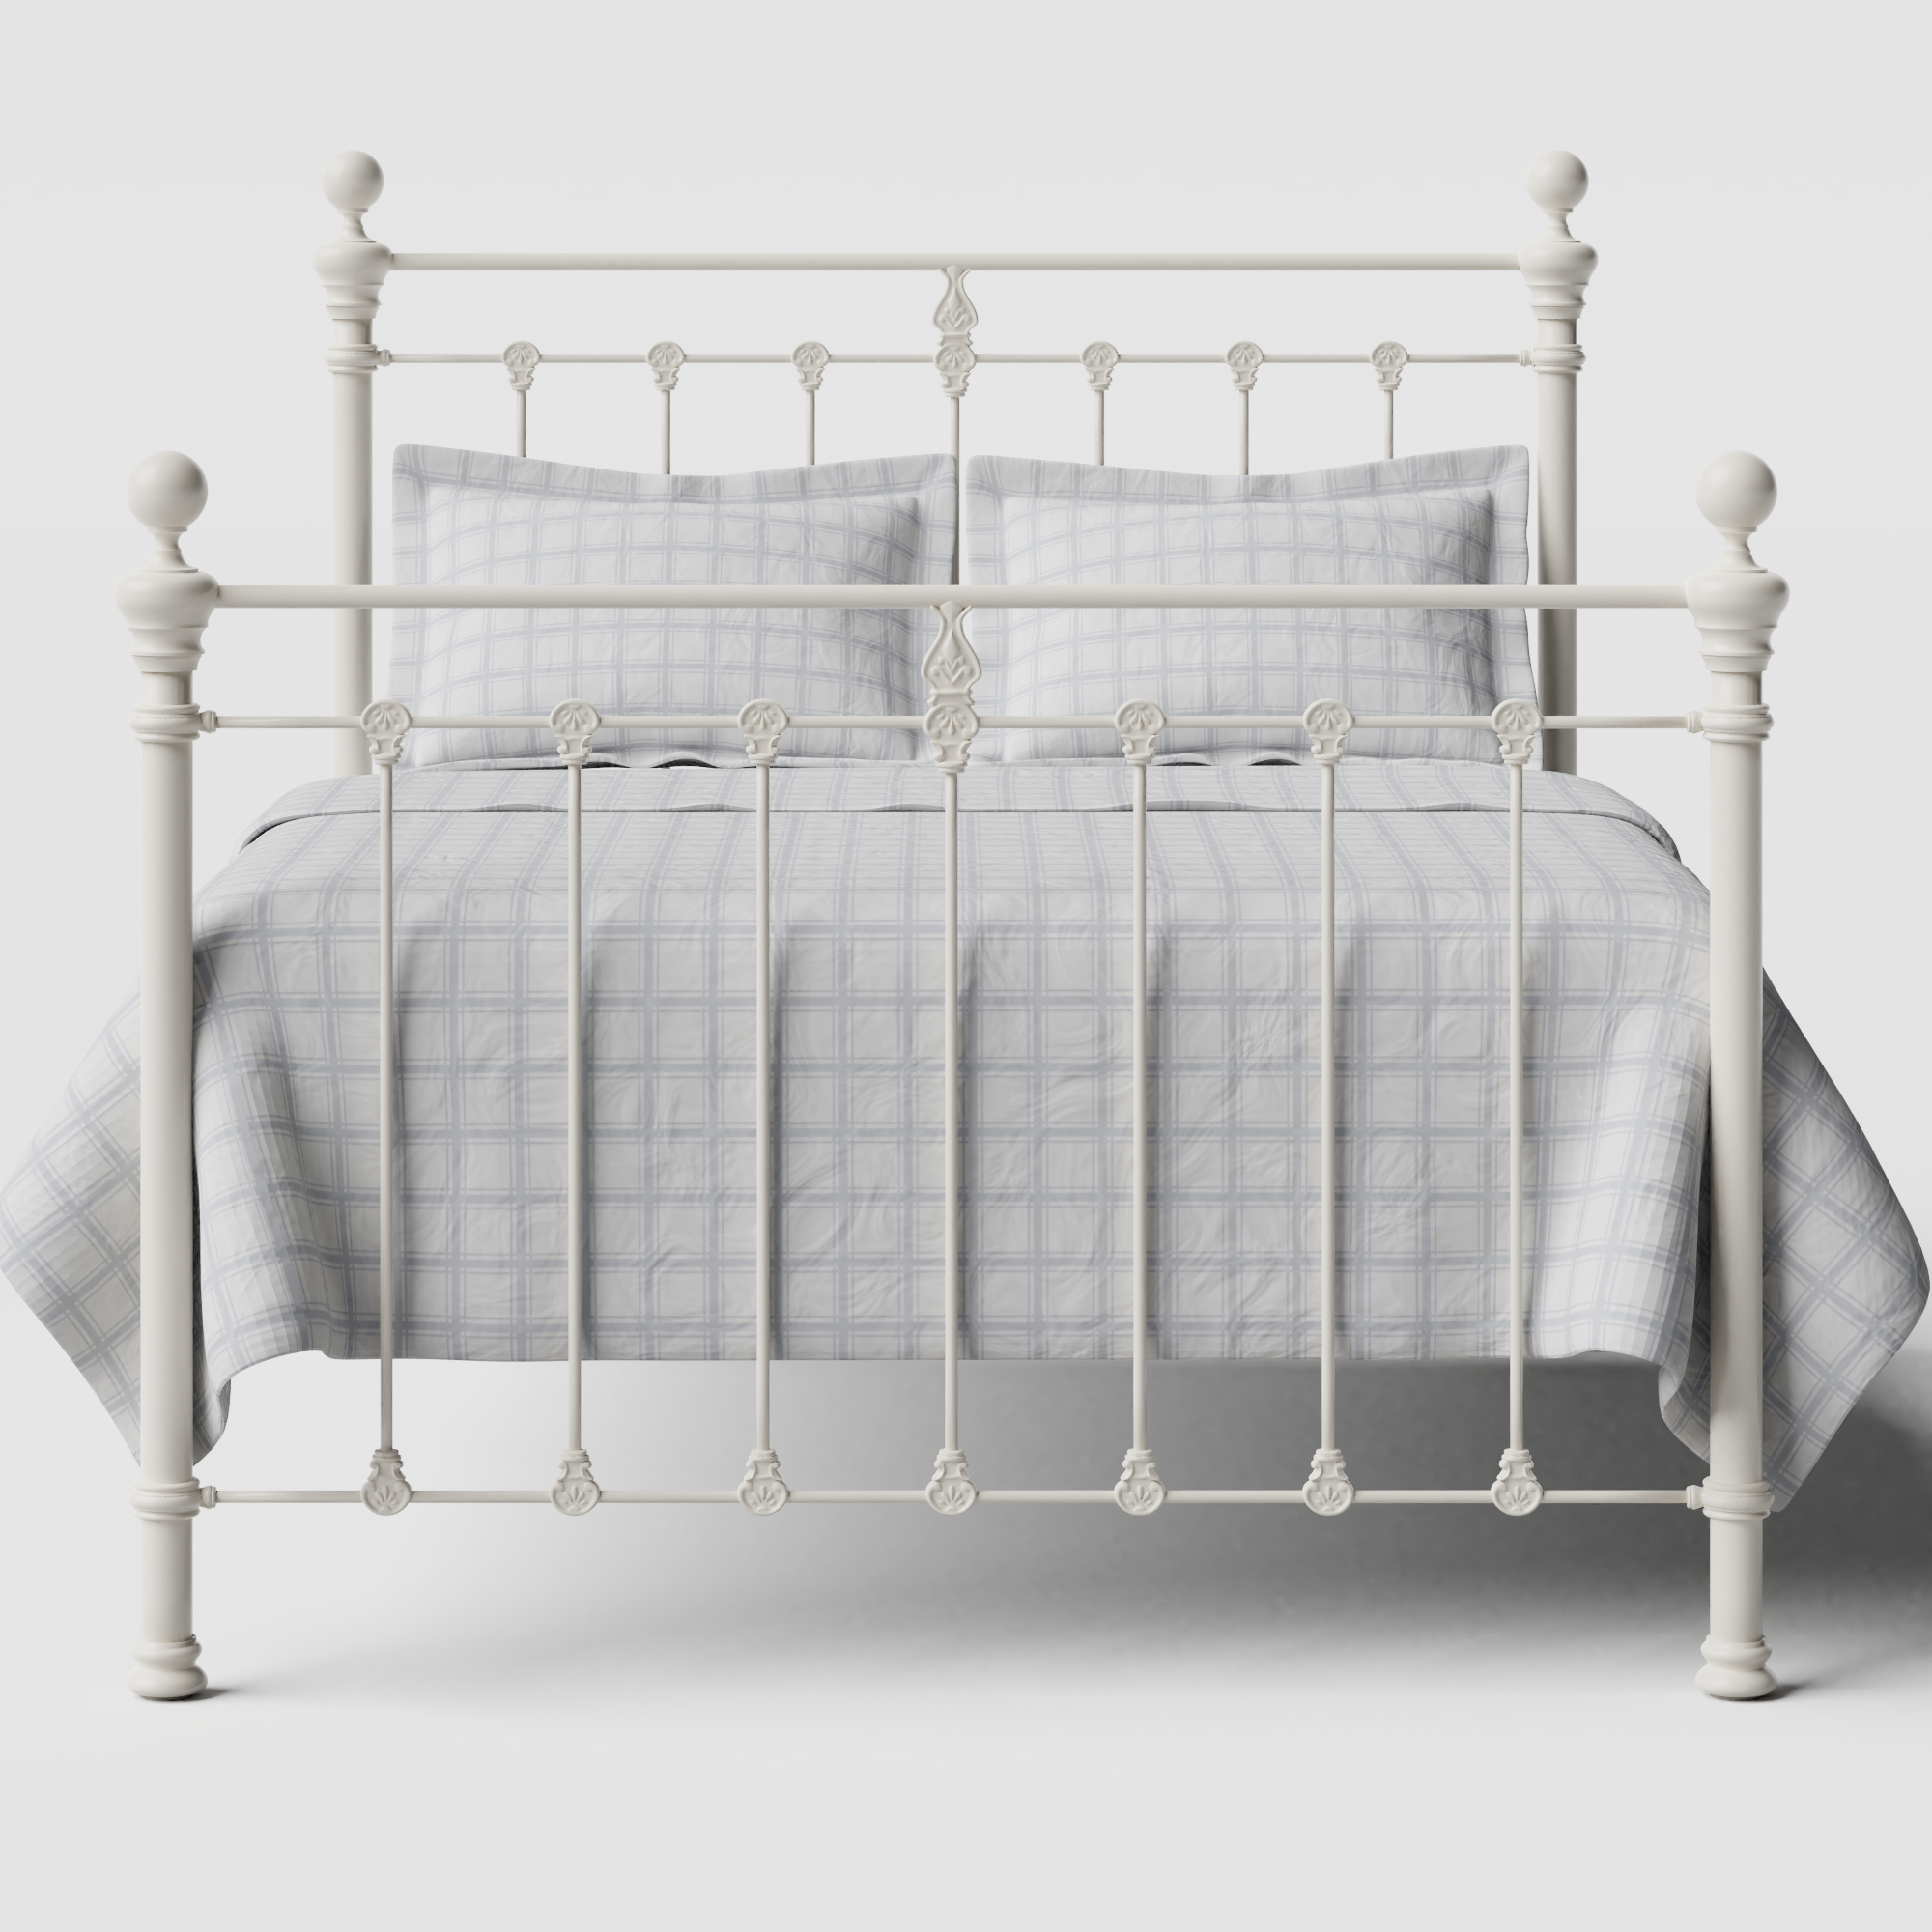 Hamilton Solo iron/metal bed in ivory